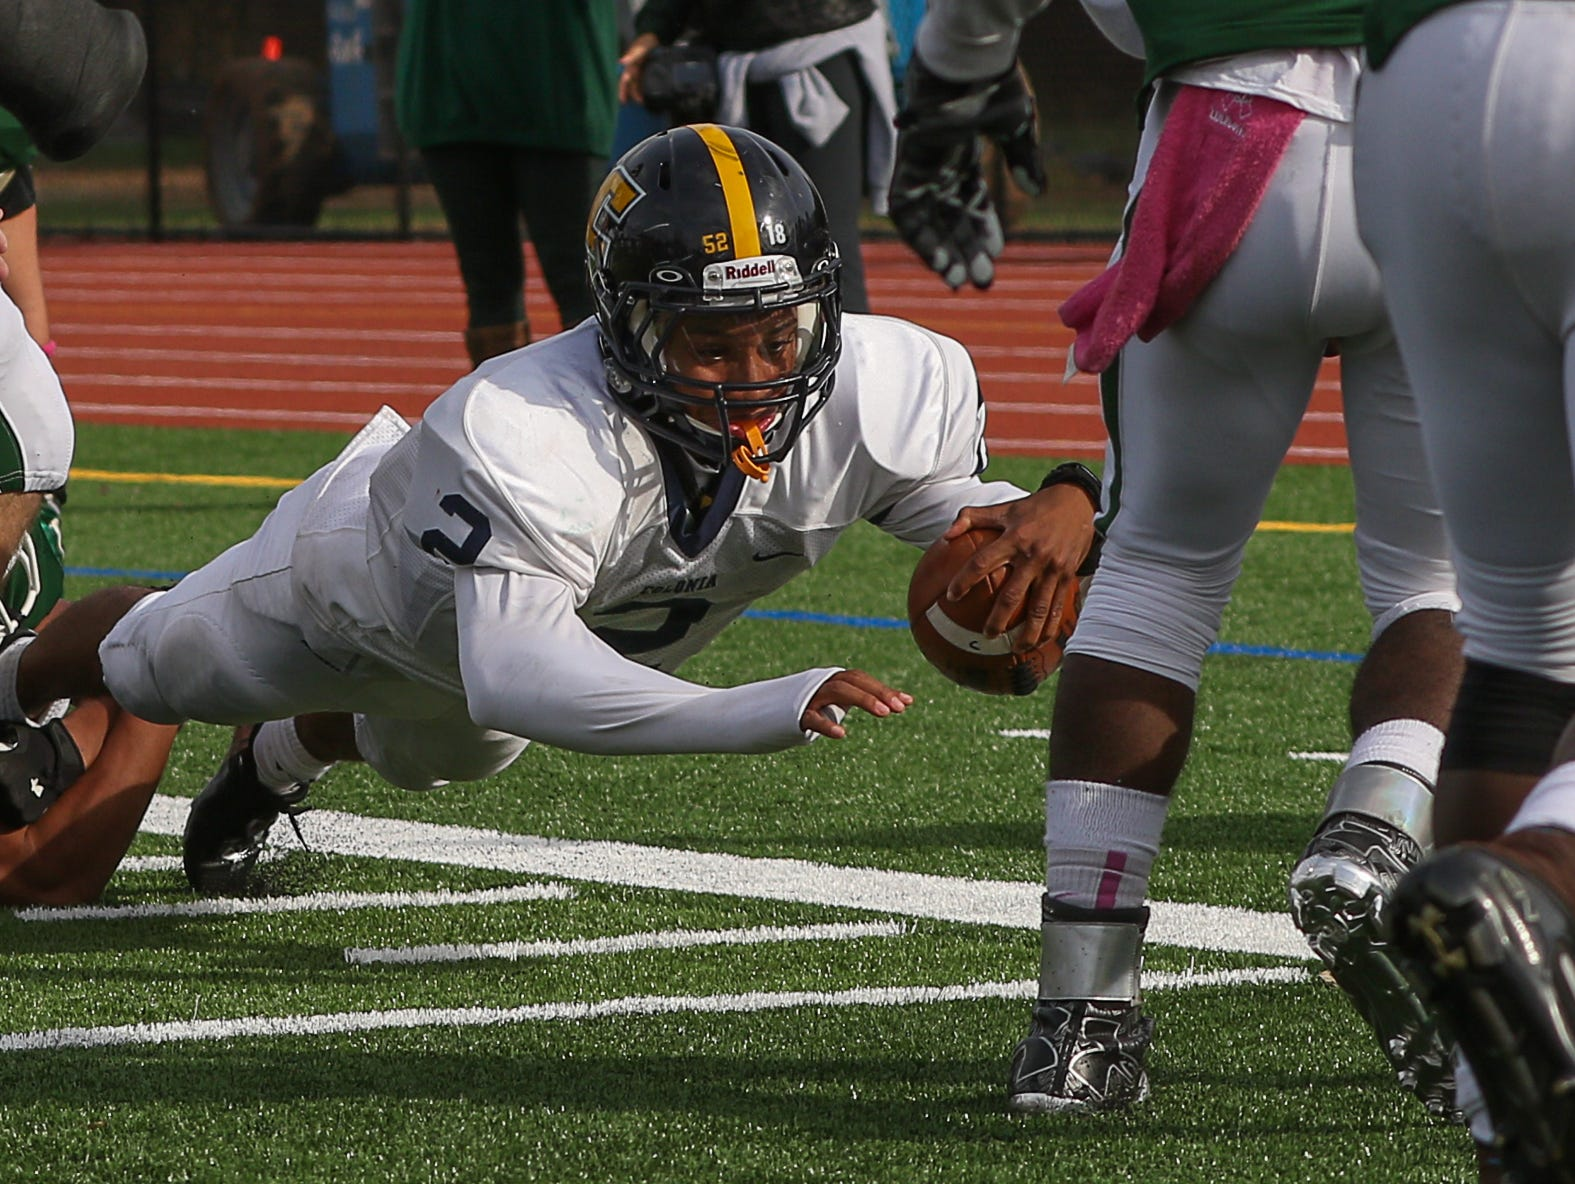 Colonia's Chase Barneys stretches out to try and score at St. Joe's in Metuchen on October 24, 2015 but was unable to reach the end zone.